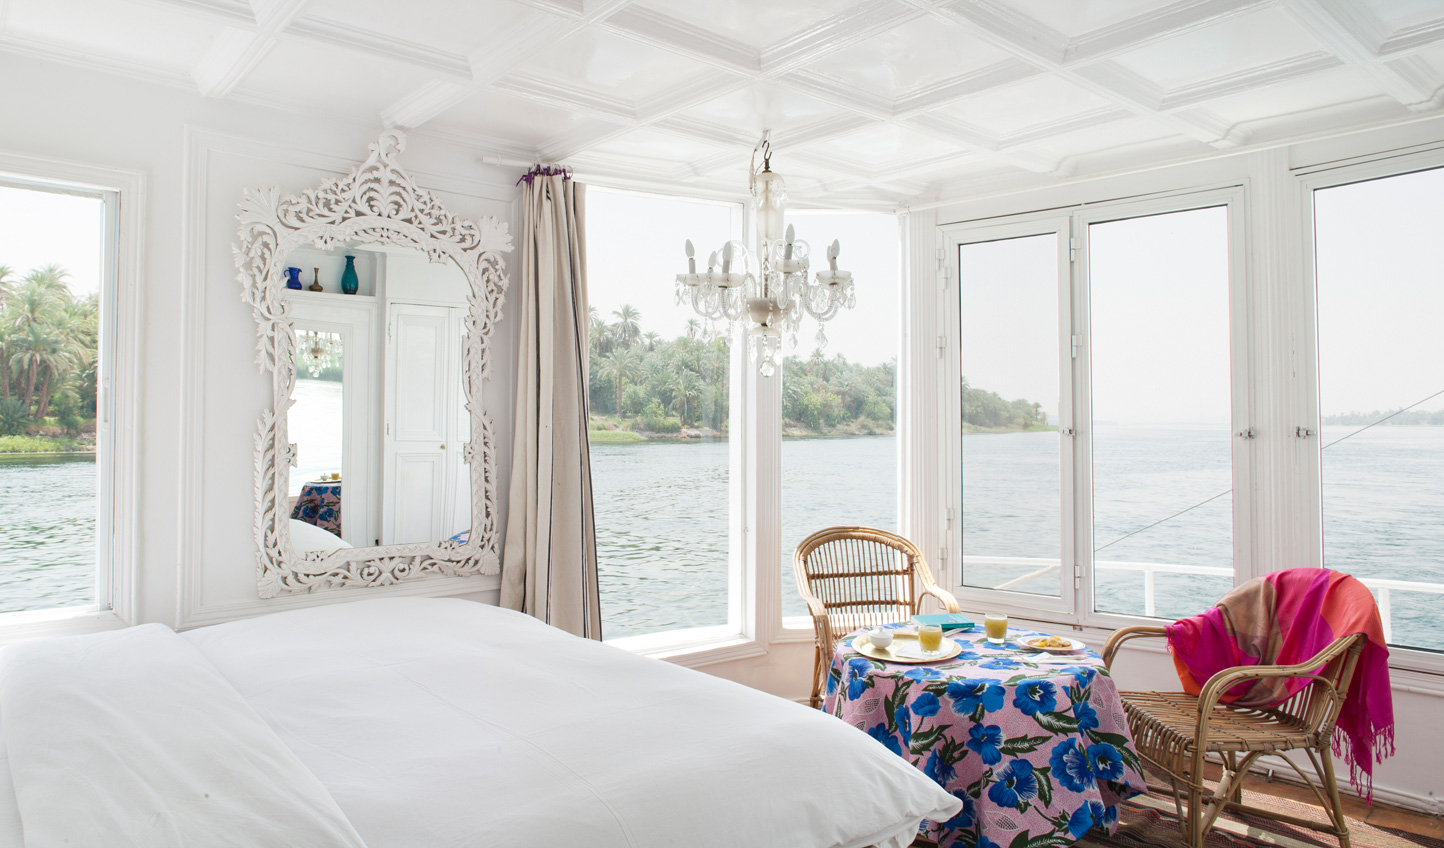 The spacious panoramic suites onboard Meroe open onto beautiful views of the Nile